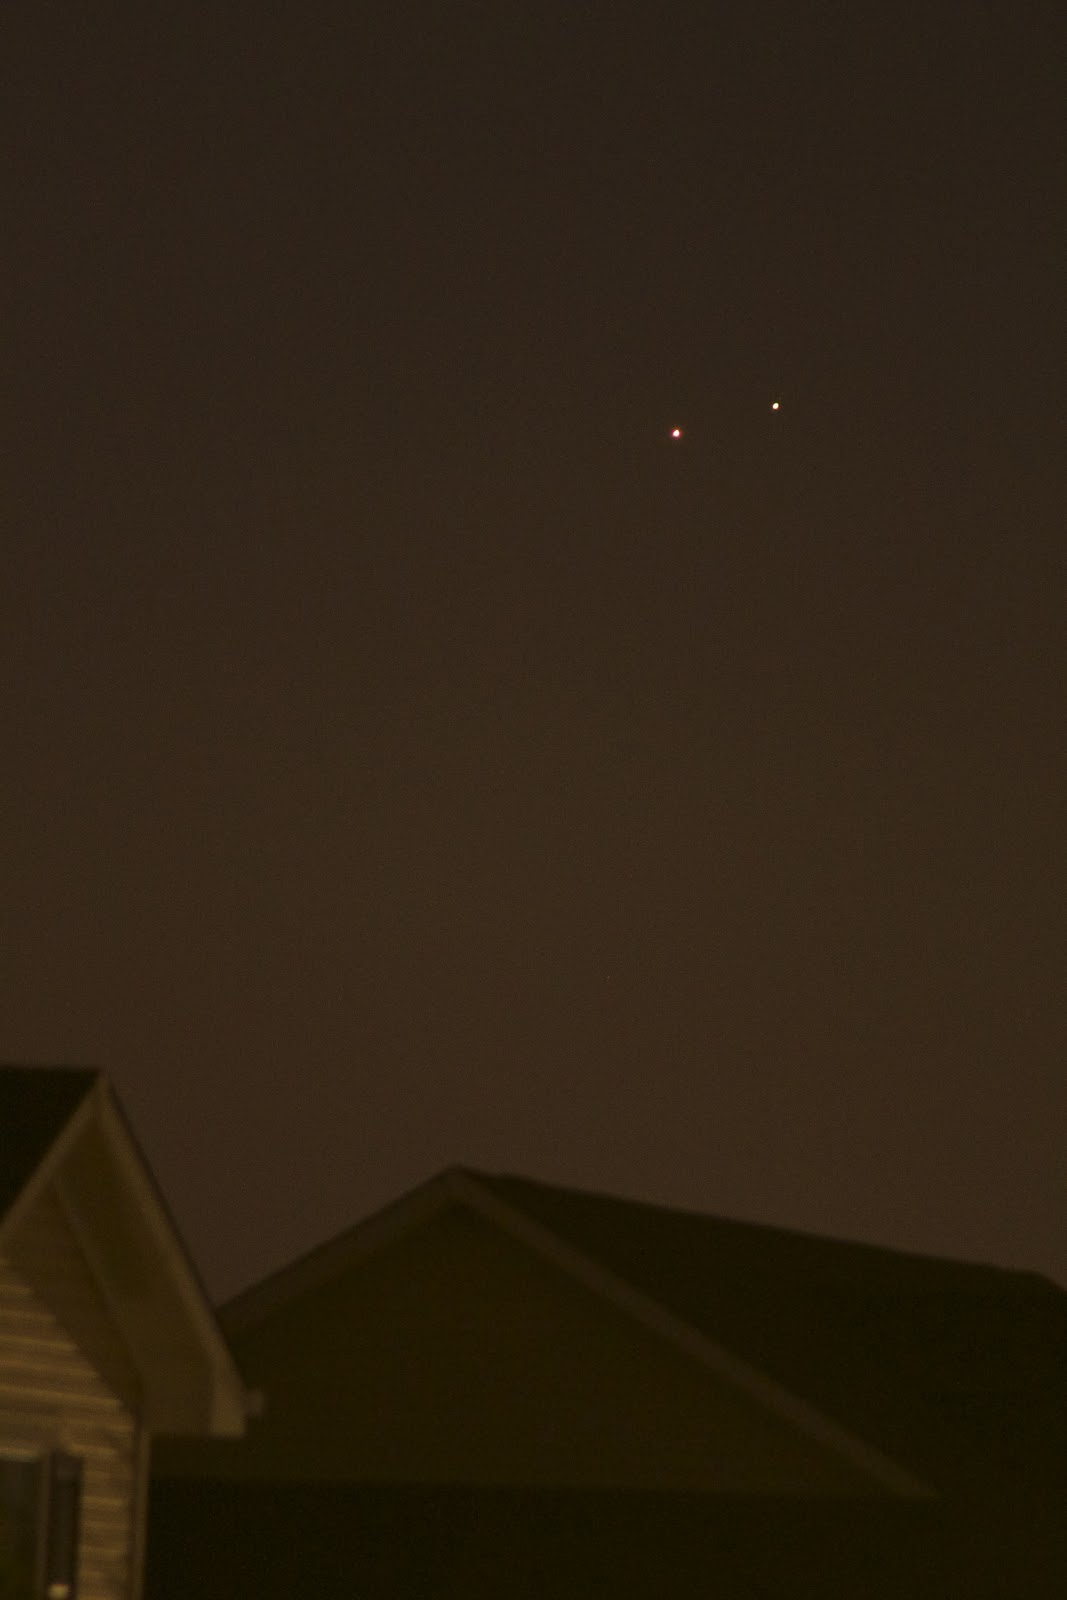 venus and jupiter august 18 conjunction